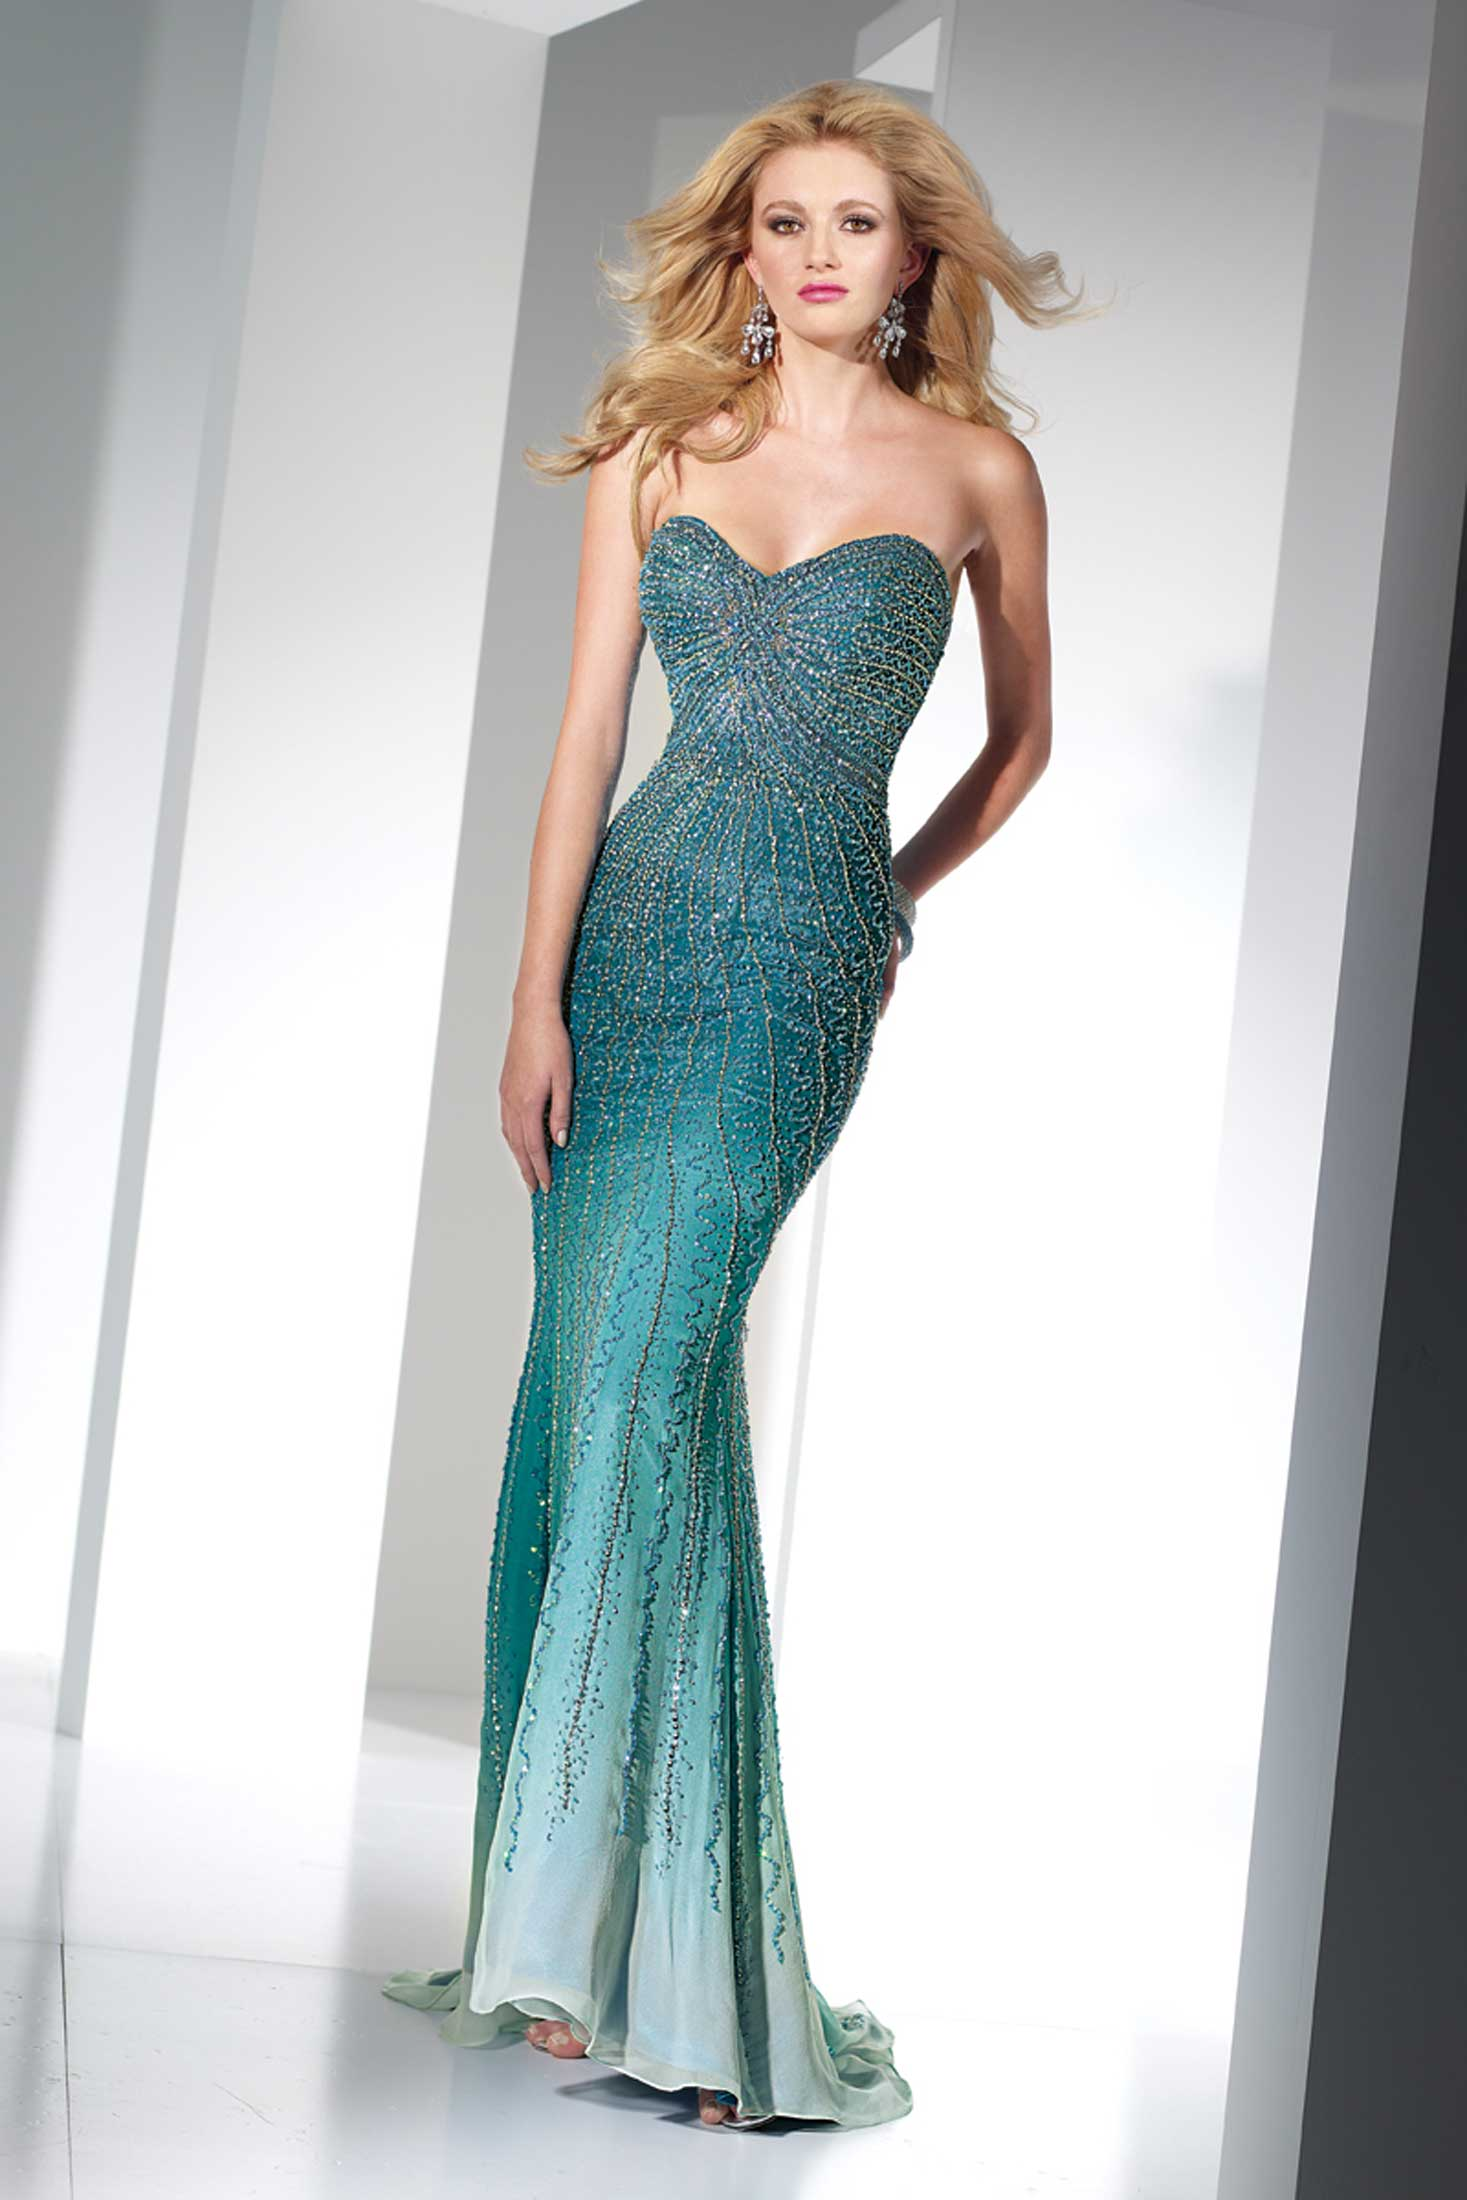 Primp and Pamper Yourself to Prom Dress Perfection! | STRUTTING IN ...